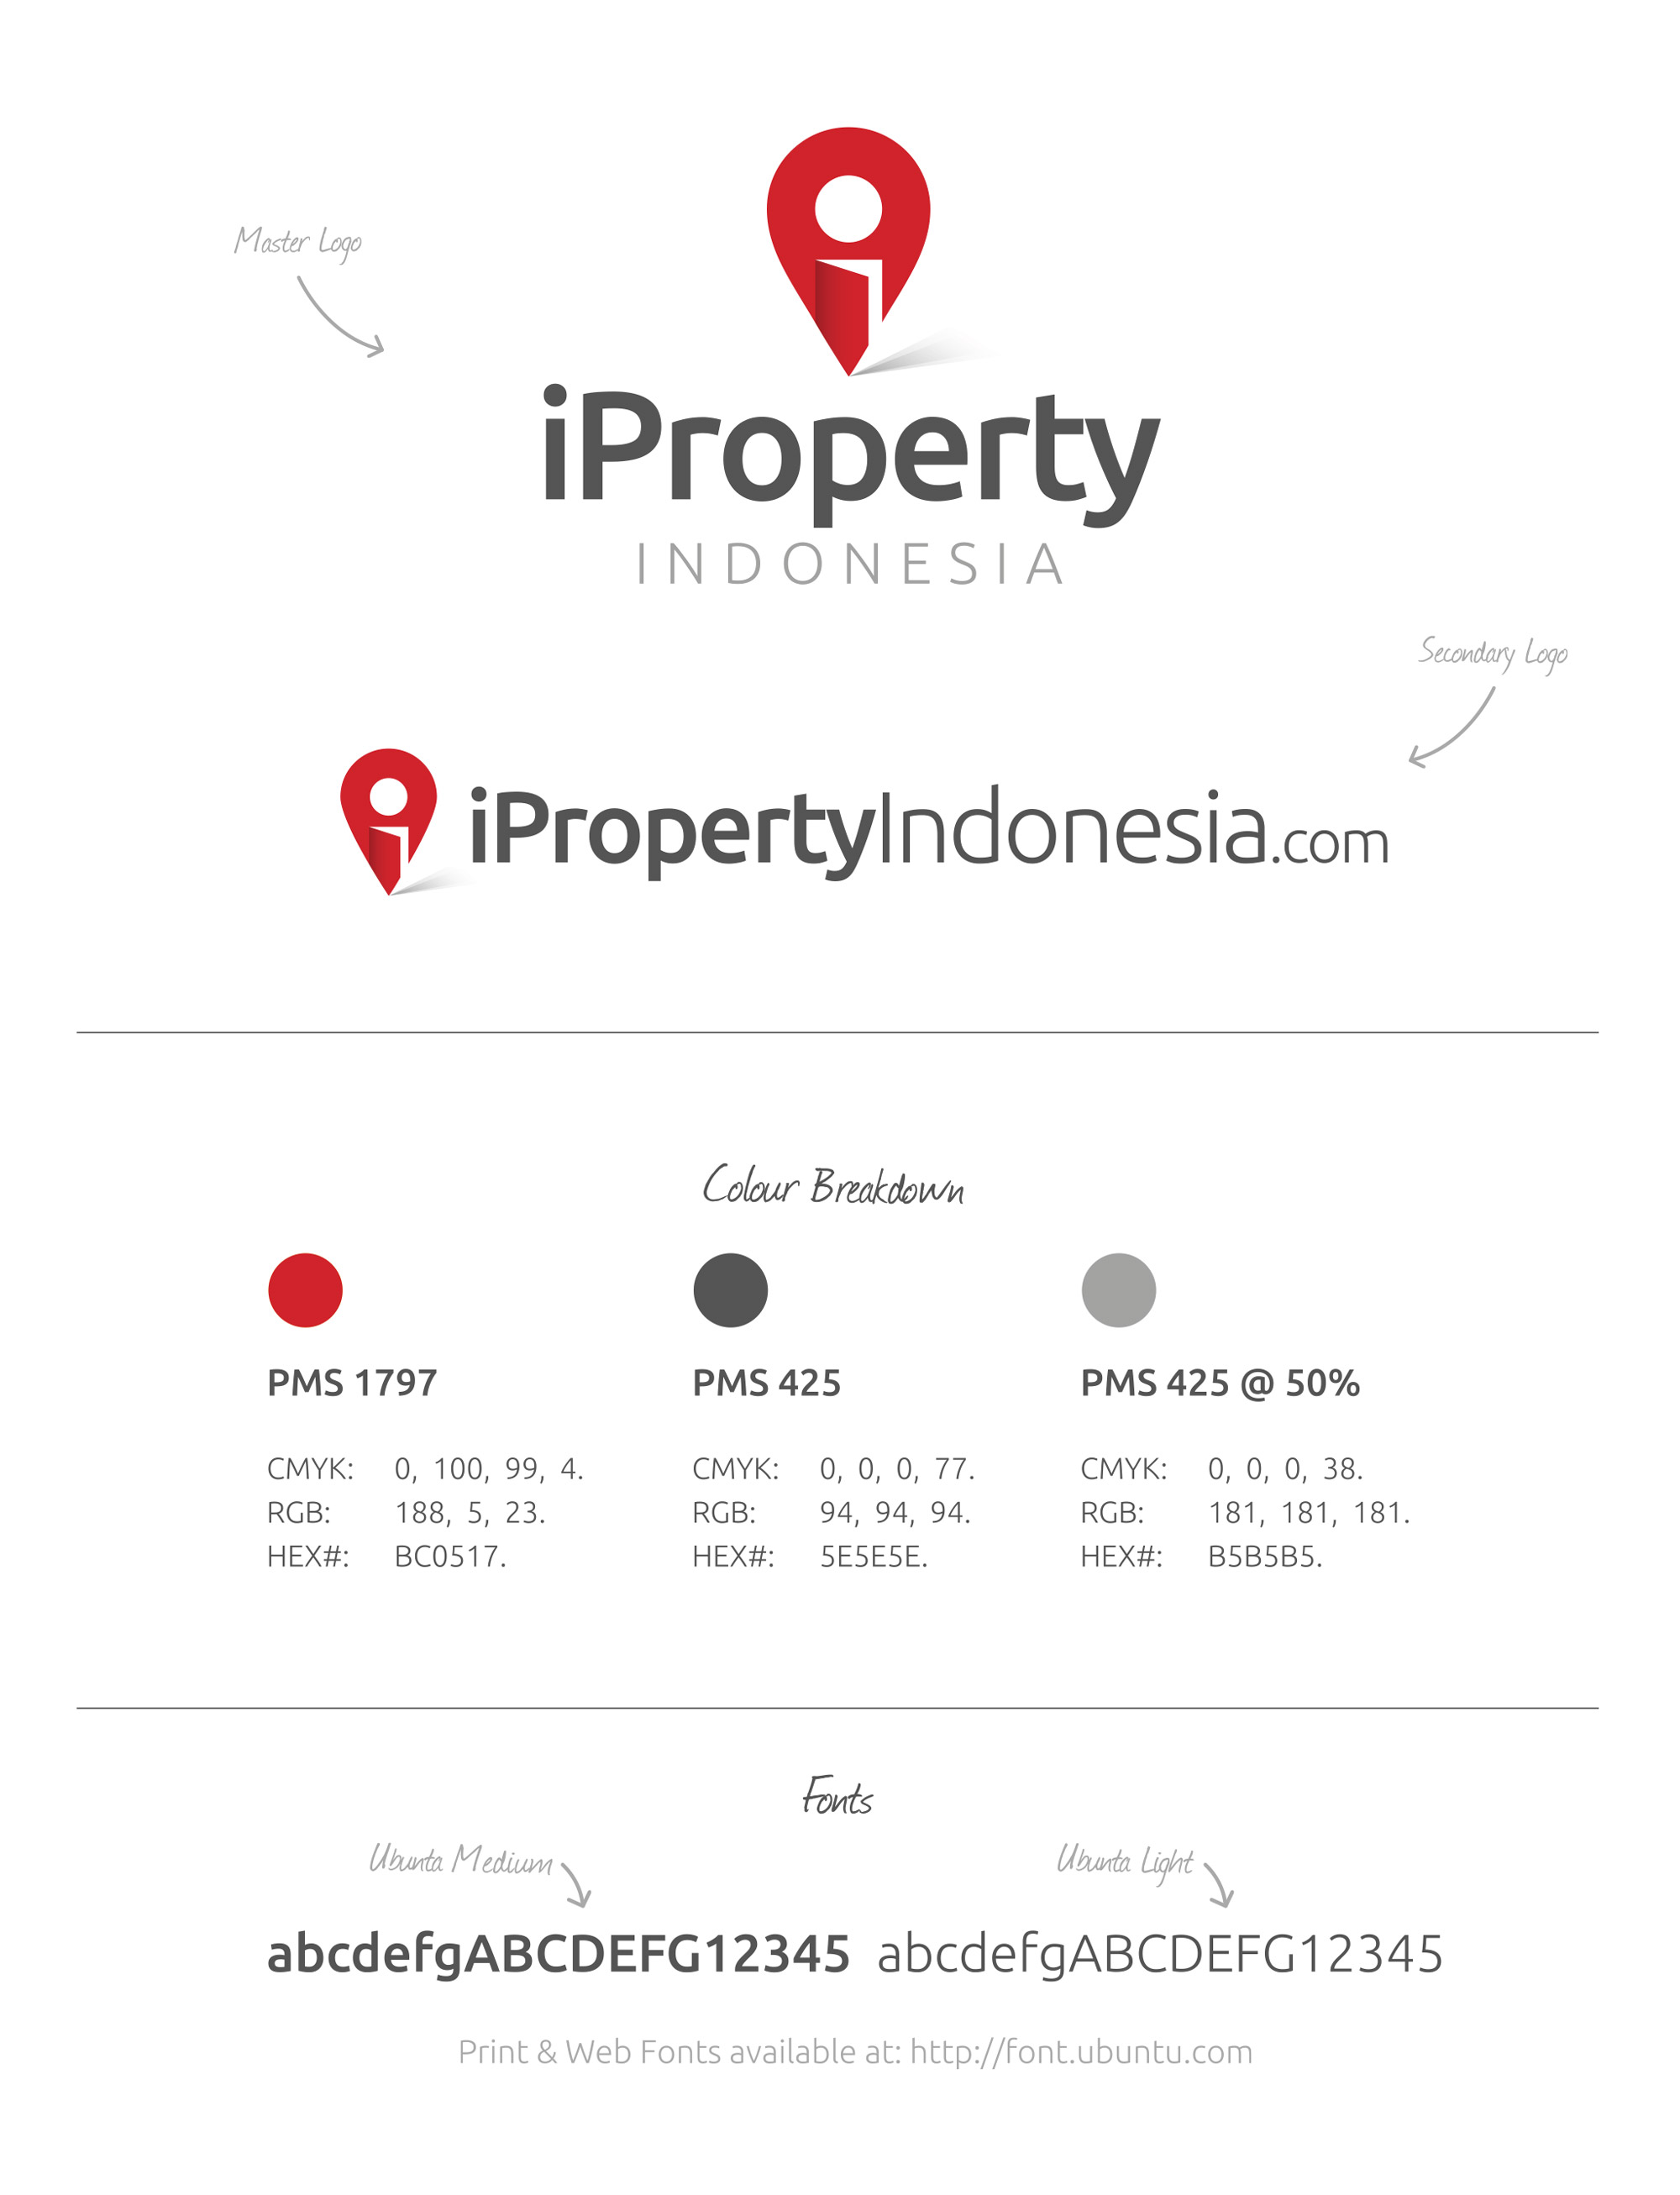 iProperty-Indonesia-Style-Guide.jpg